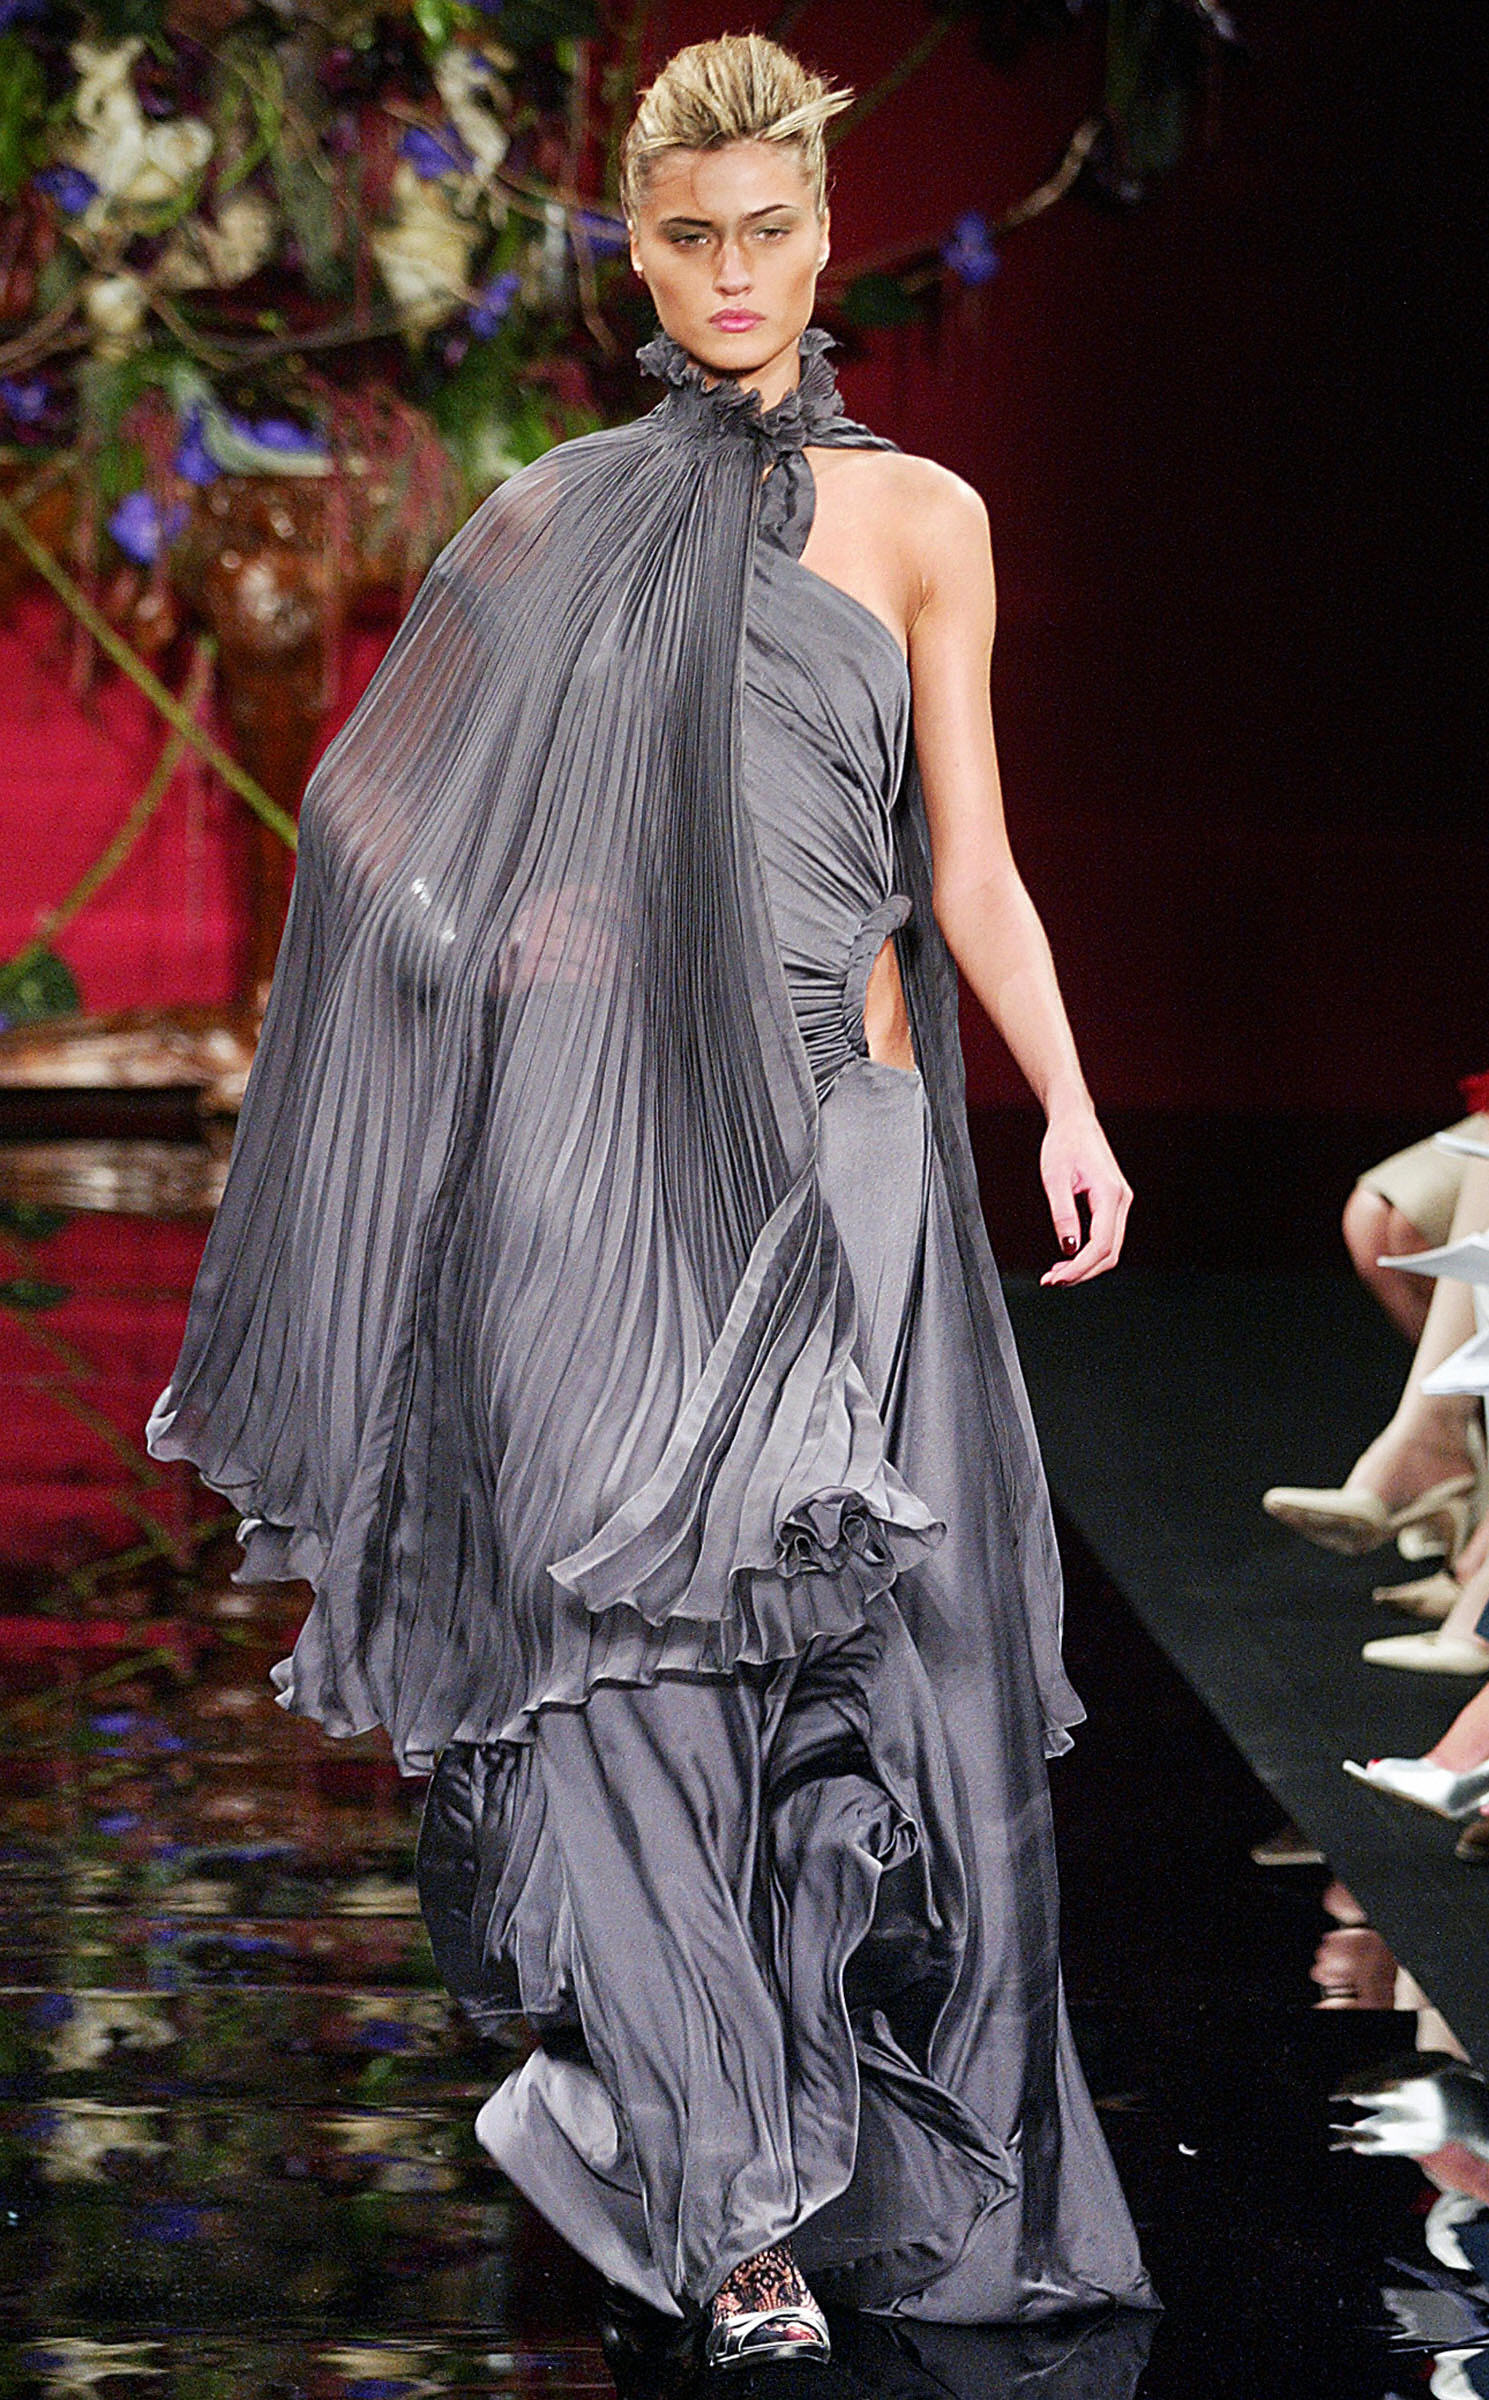 Модный дом Givenchy. Фото: PIERRE VERDY/AFP/Getty Images